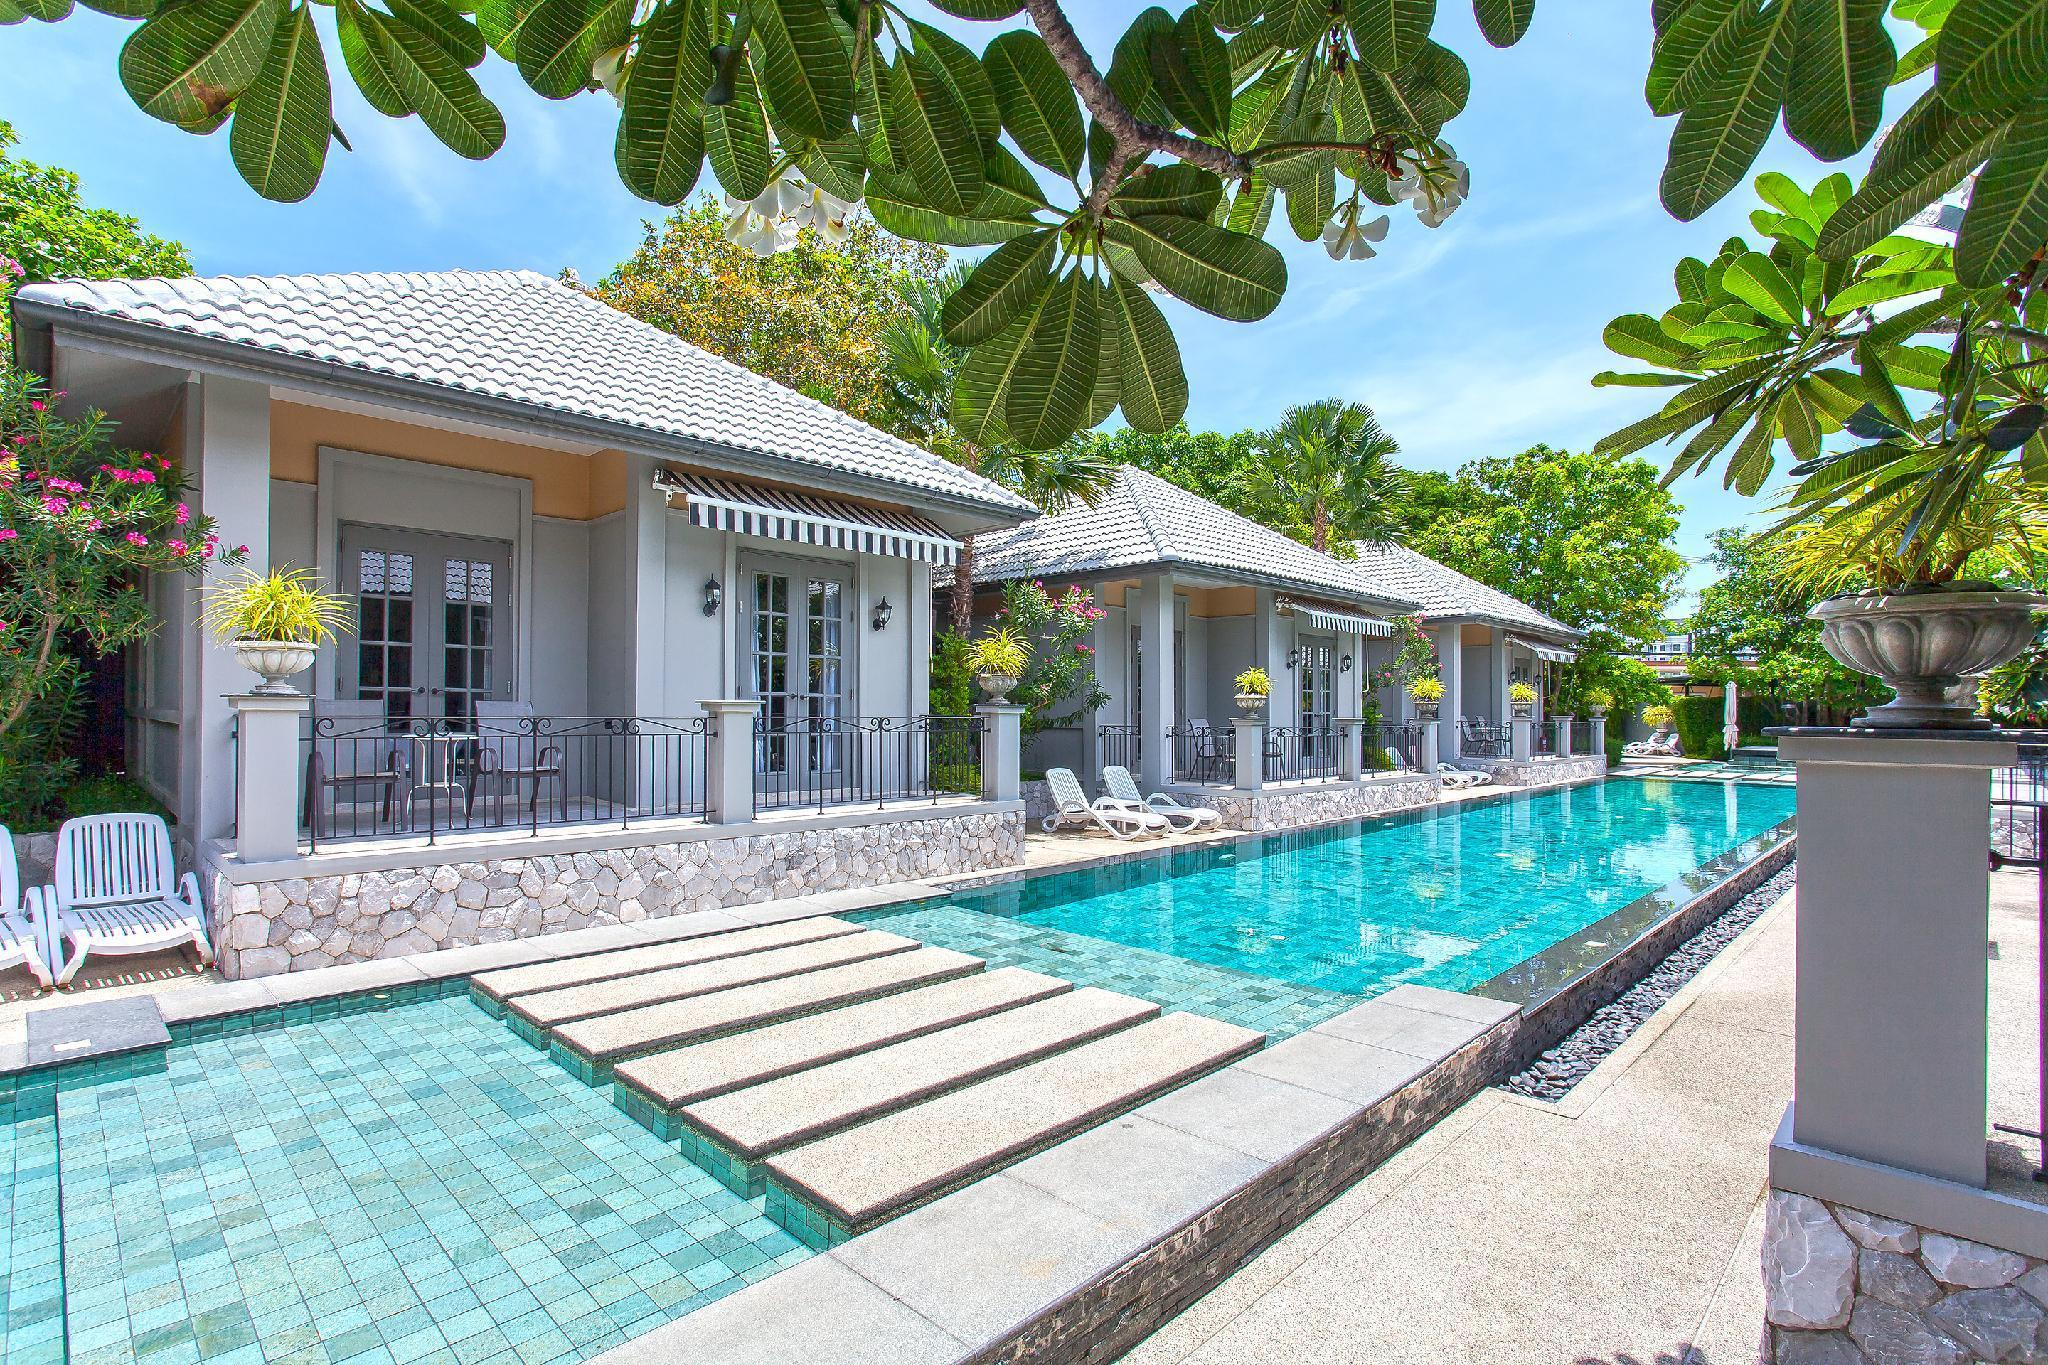 Pattaya Retreat Pool Villas 12 Bedroom Sleeps 24 Pattaya Retreat Pool Villas 12 Bedroom Sleeps 24